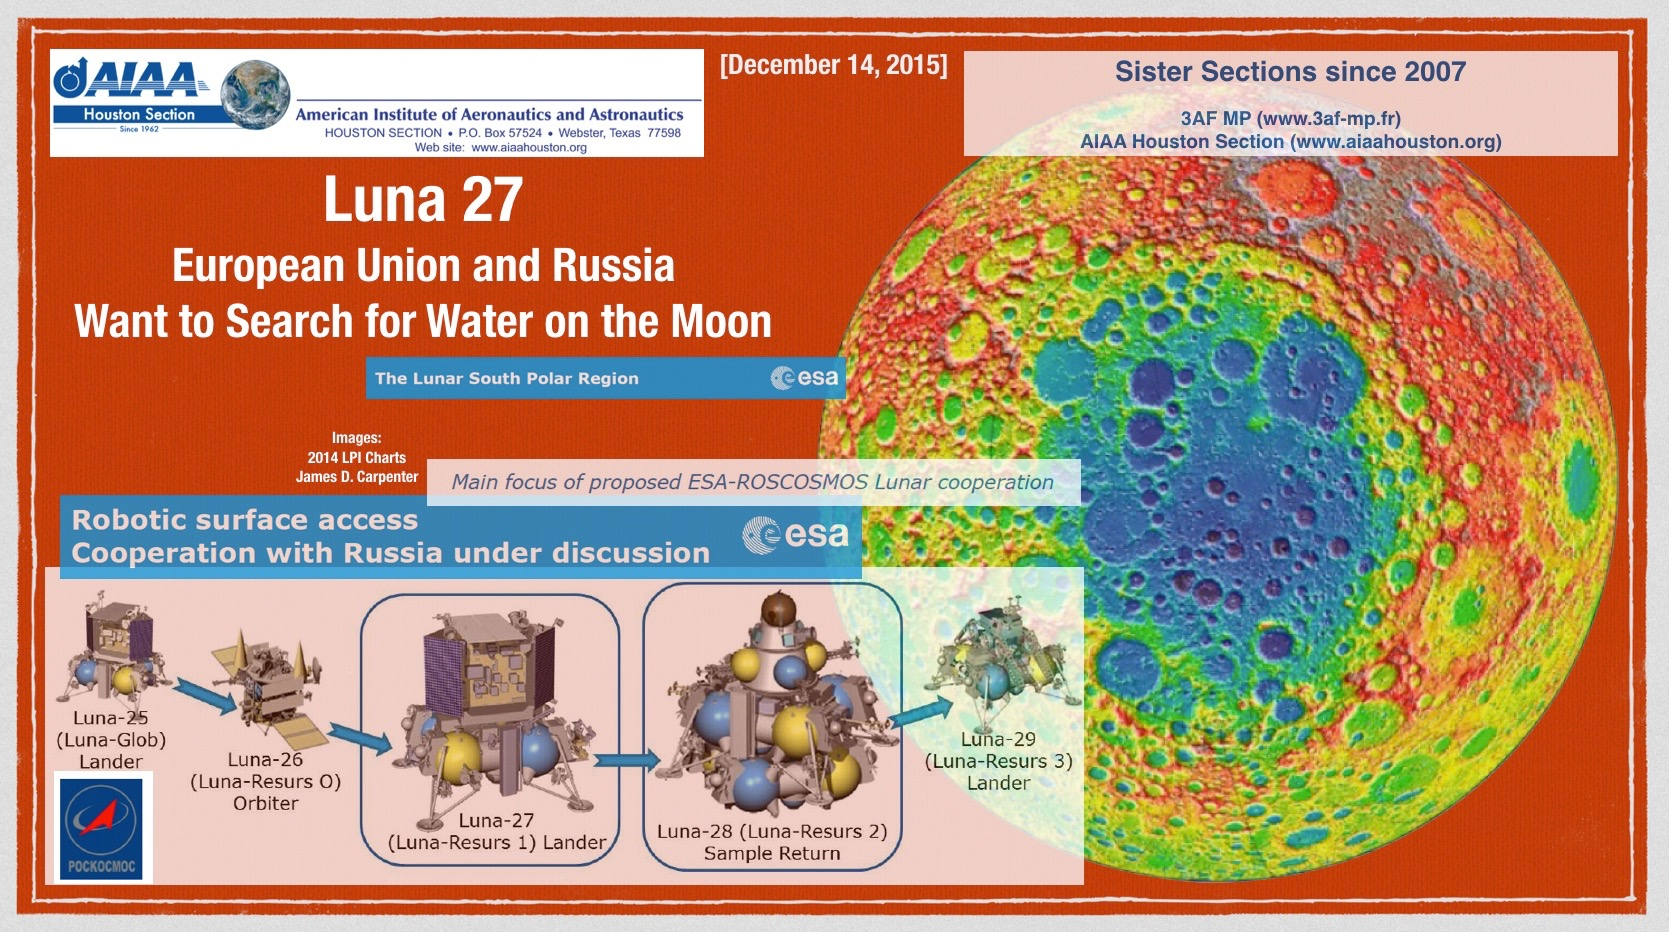 Above: The EU and Russian want to search for water on the Moon. This headline comes from an online article dated October 21, 2015. (Click to zoom.) Image credits: A 2014 presentation by James D. Carpenter at the Lunar and Planetary Institute (LPI) in Houston Texas USA.